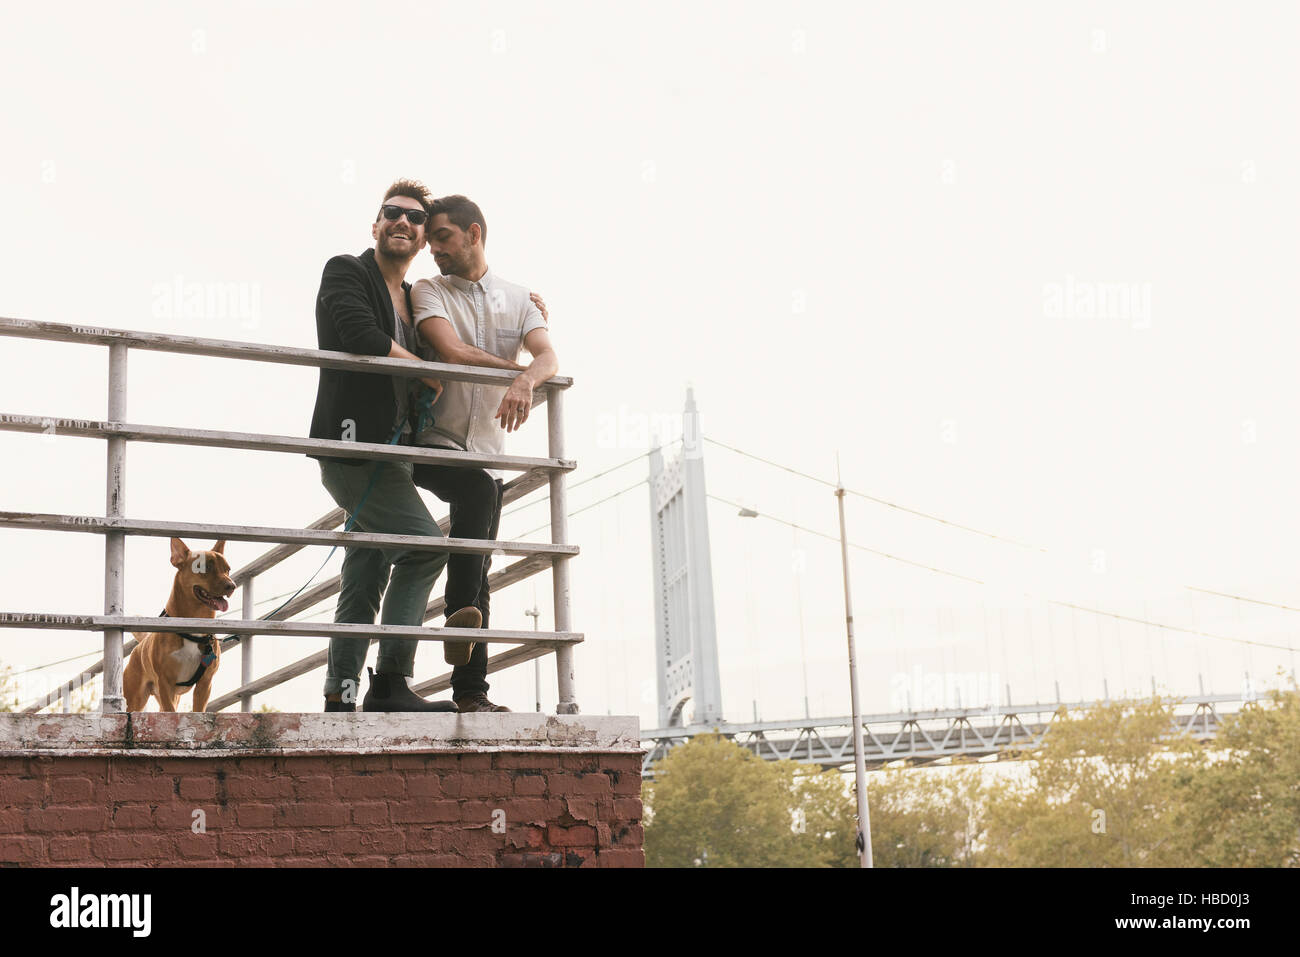 Affectionate young male couple on riverside with dog, Astoria, New York, USA - Stock Image